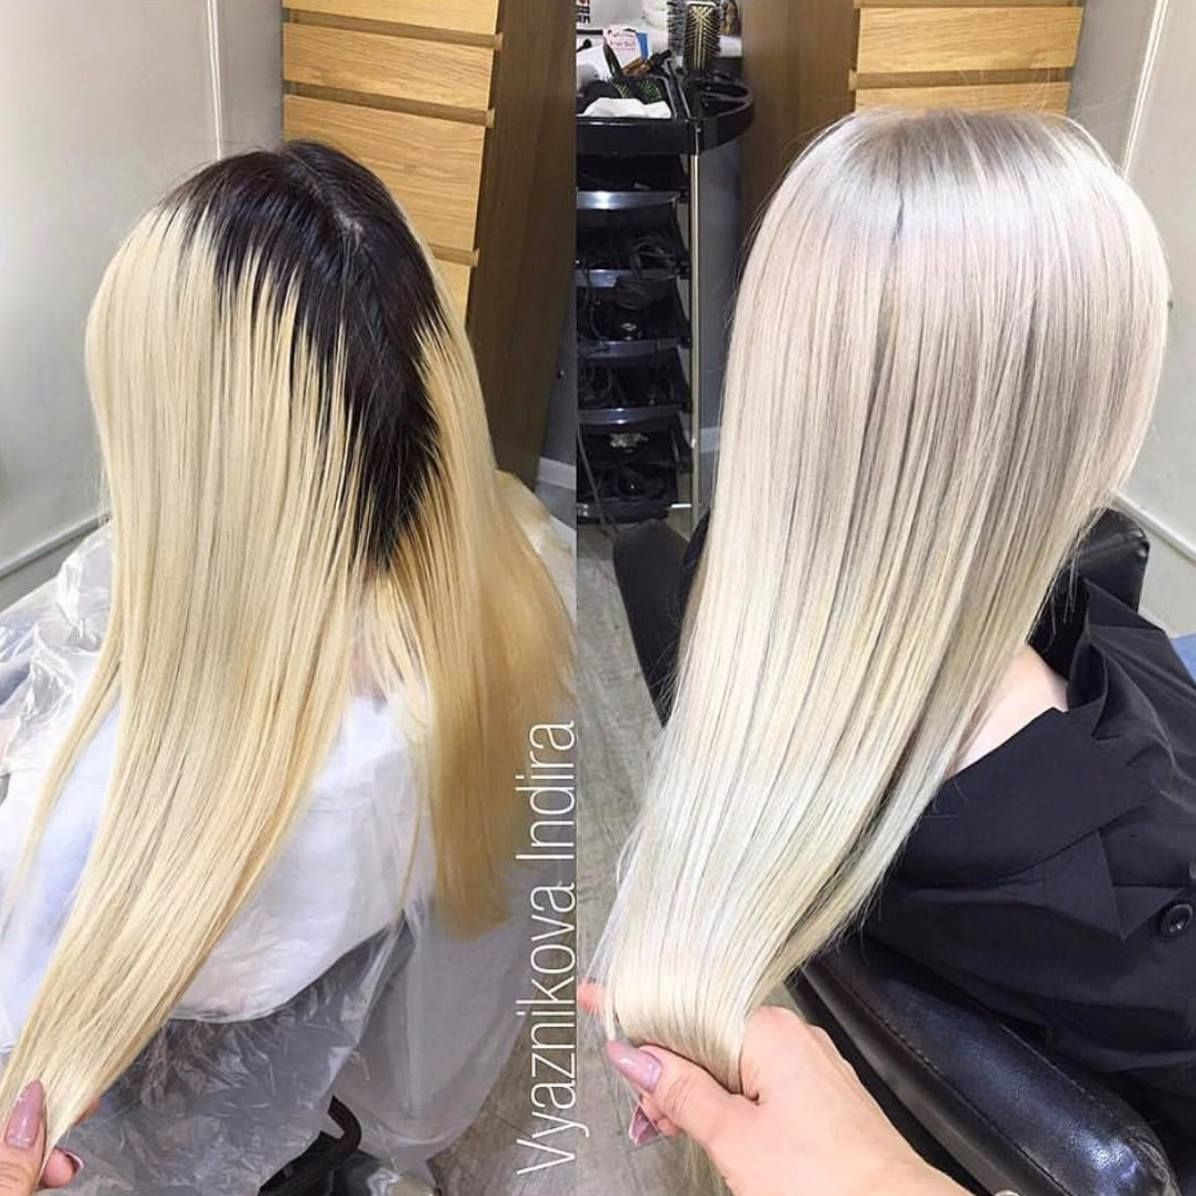 Look At Those Roots Black To White With Dramatically Reduced Damage By Adding Olaplex To Bleach Blonde Hair Dark Roots Blonde Hair Blonde Hair Transformations